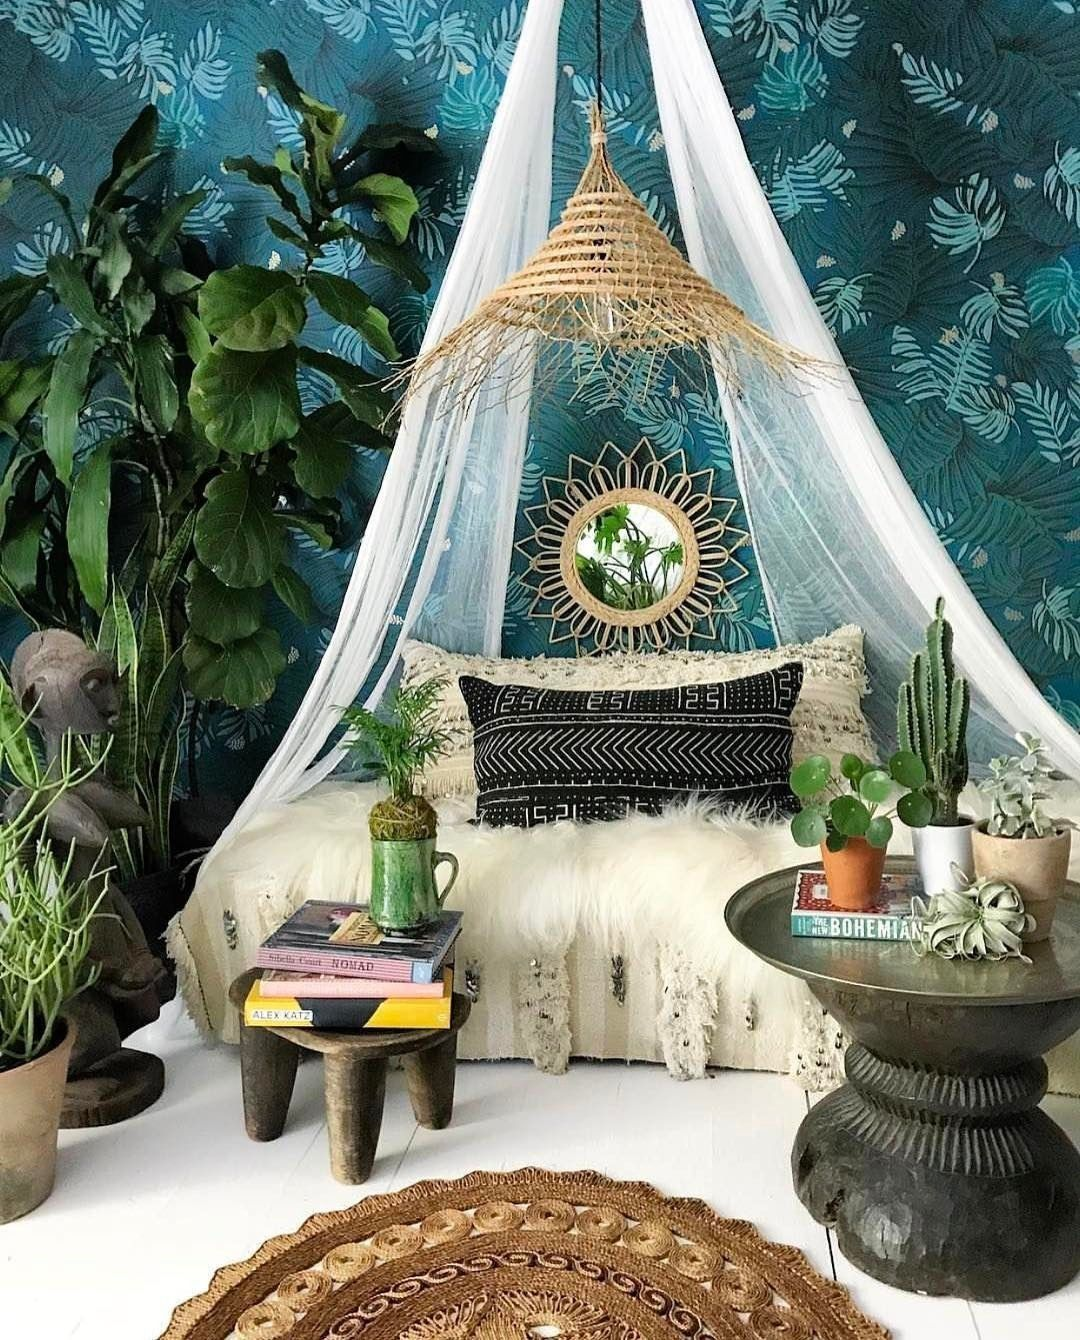 Diy Bohemian Decor: Now THIS Is A Set Up We Can Work With. Incorporate